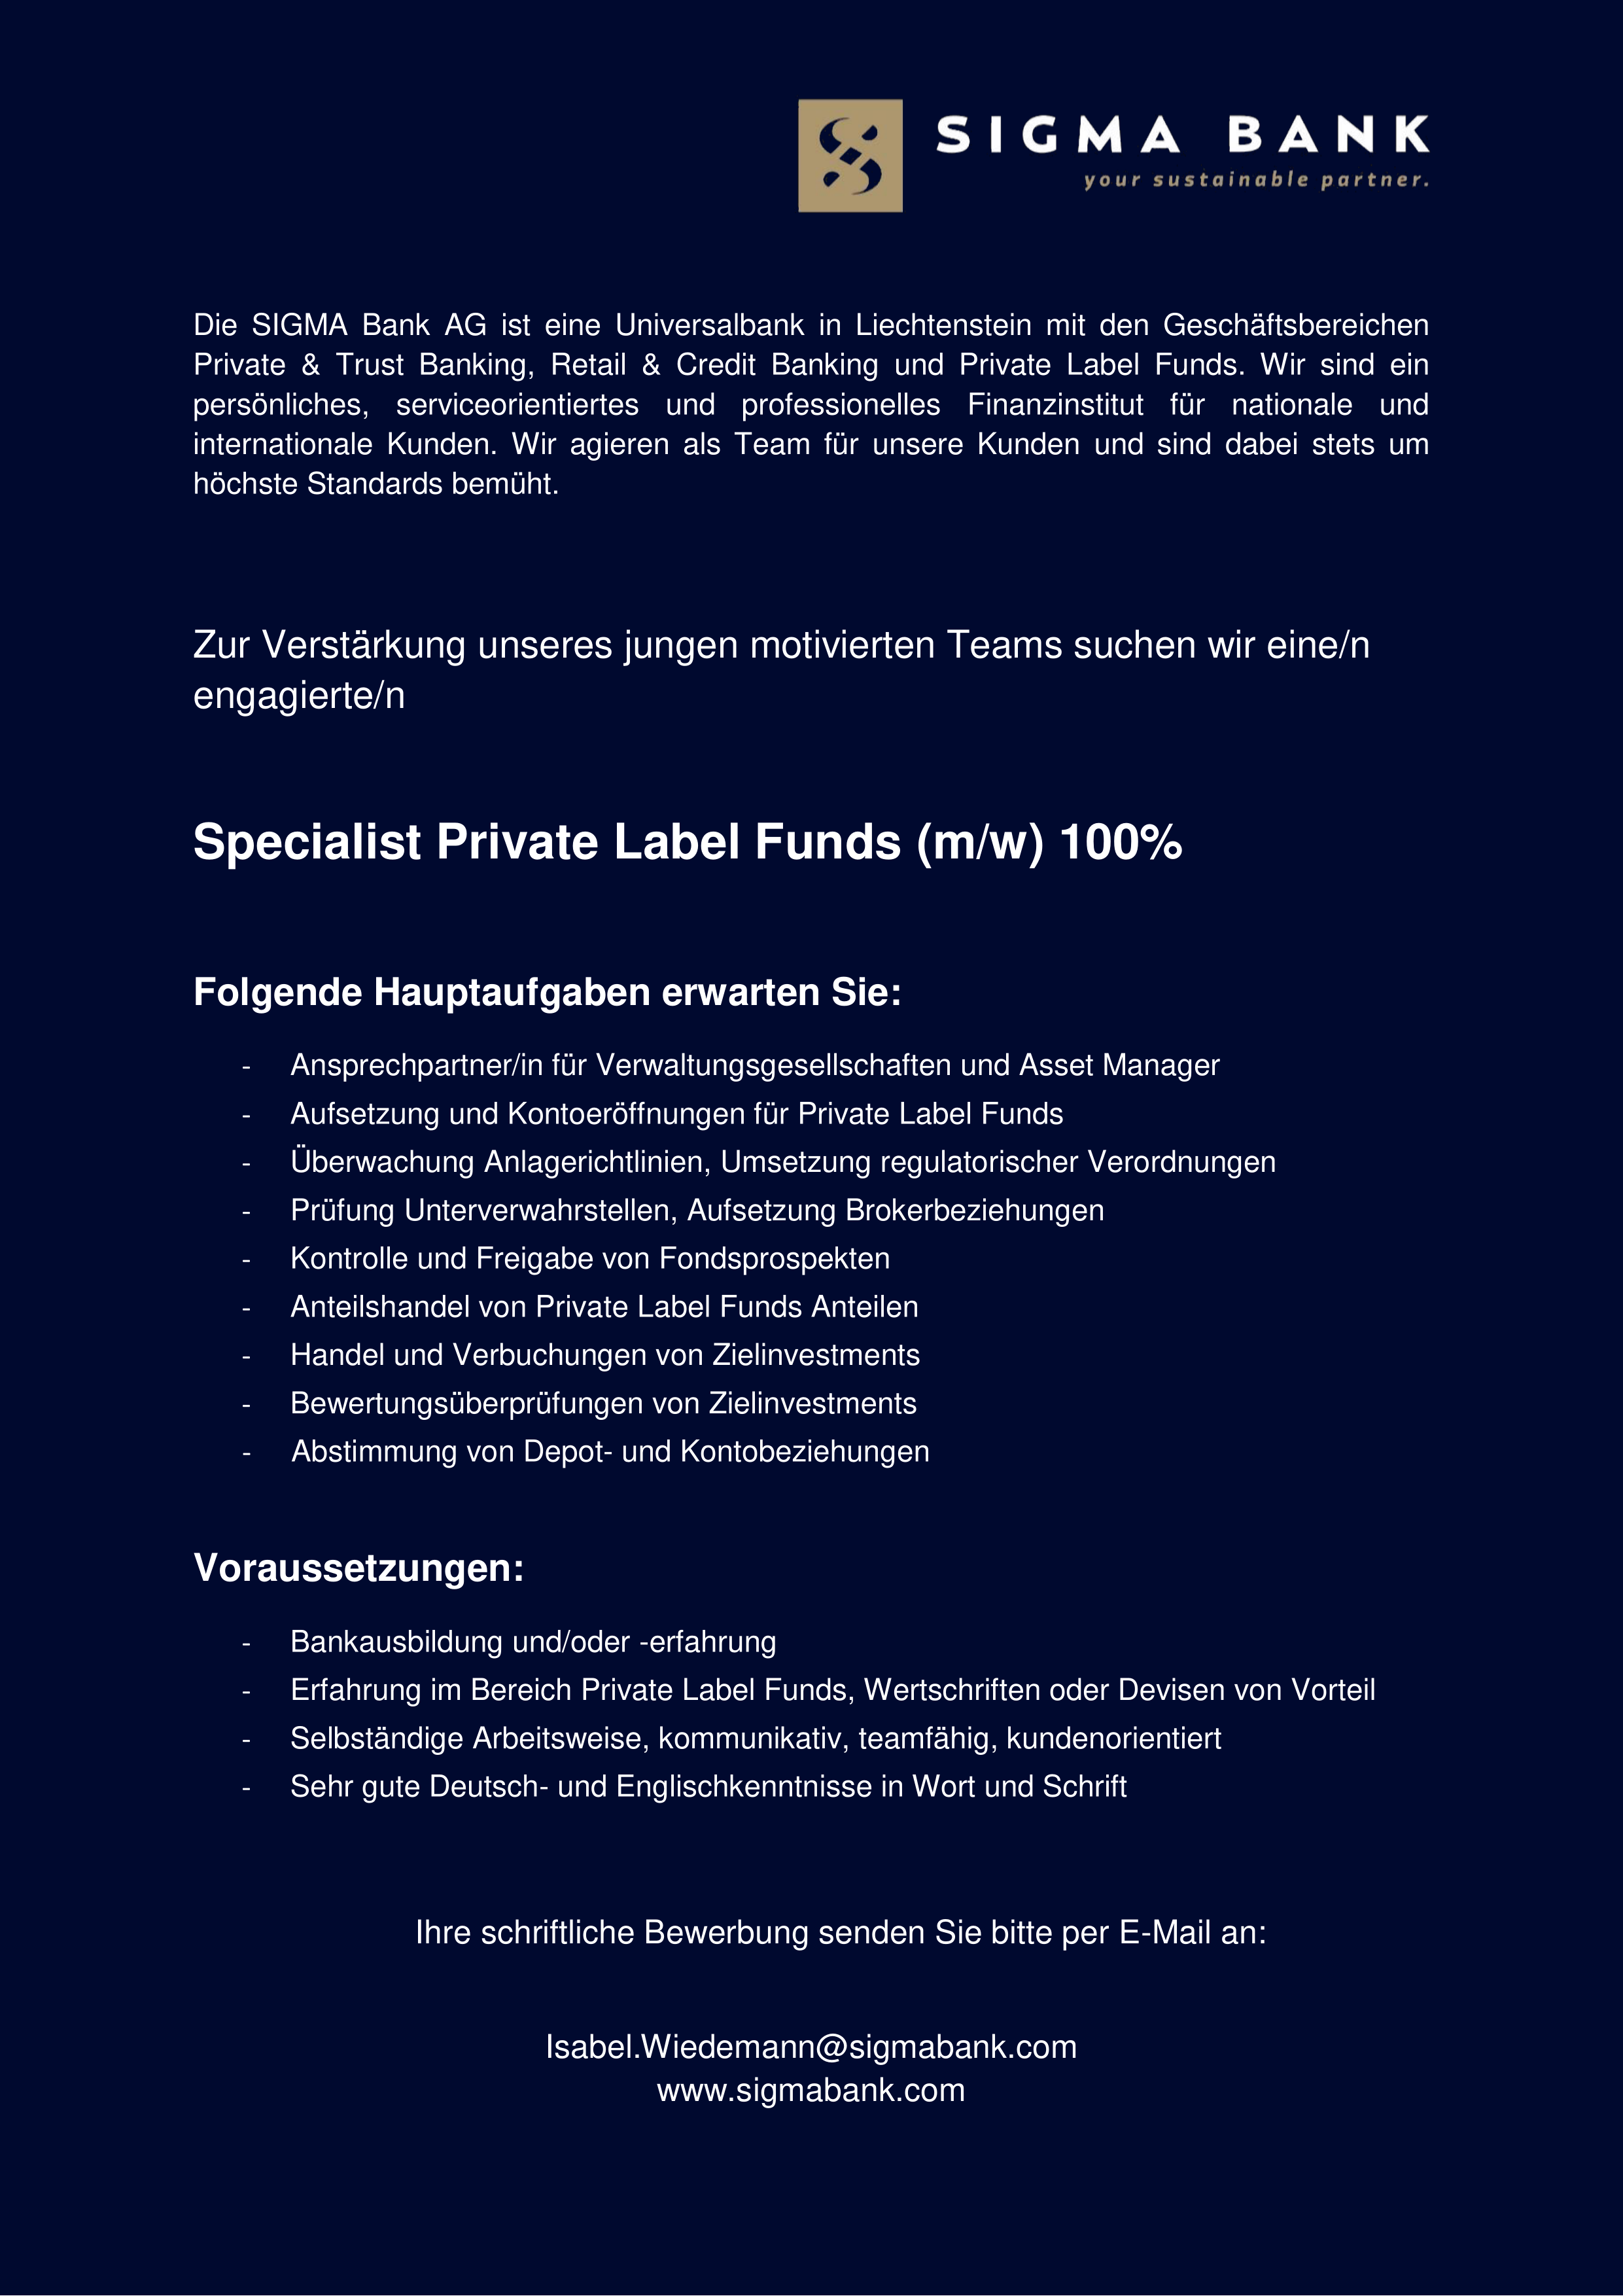 Specialist Private Label Funds (m/w) 100%